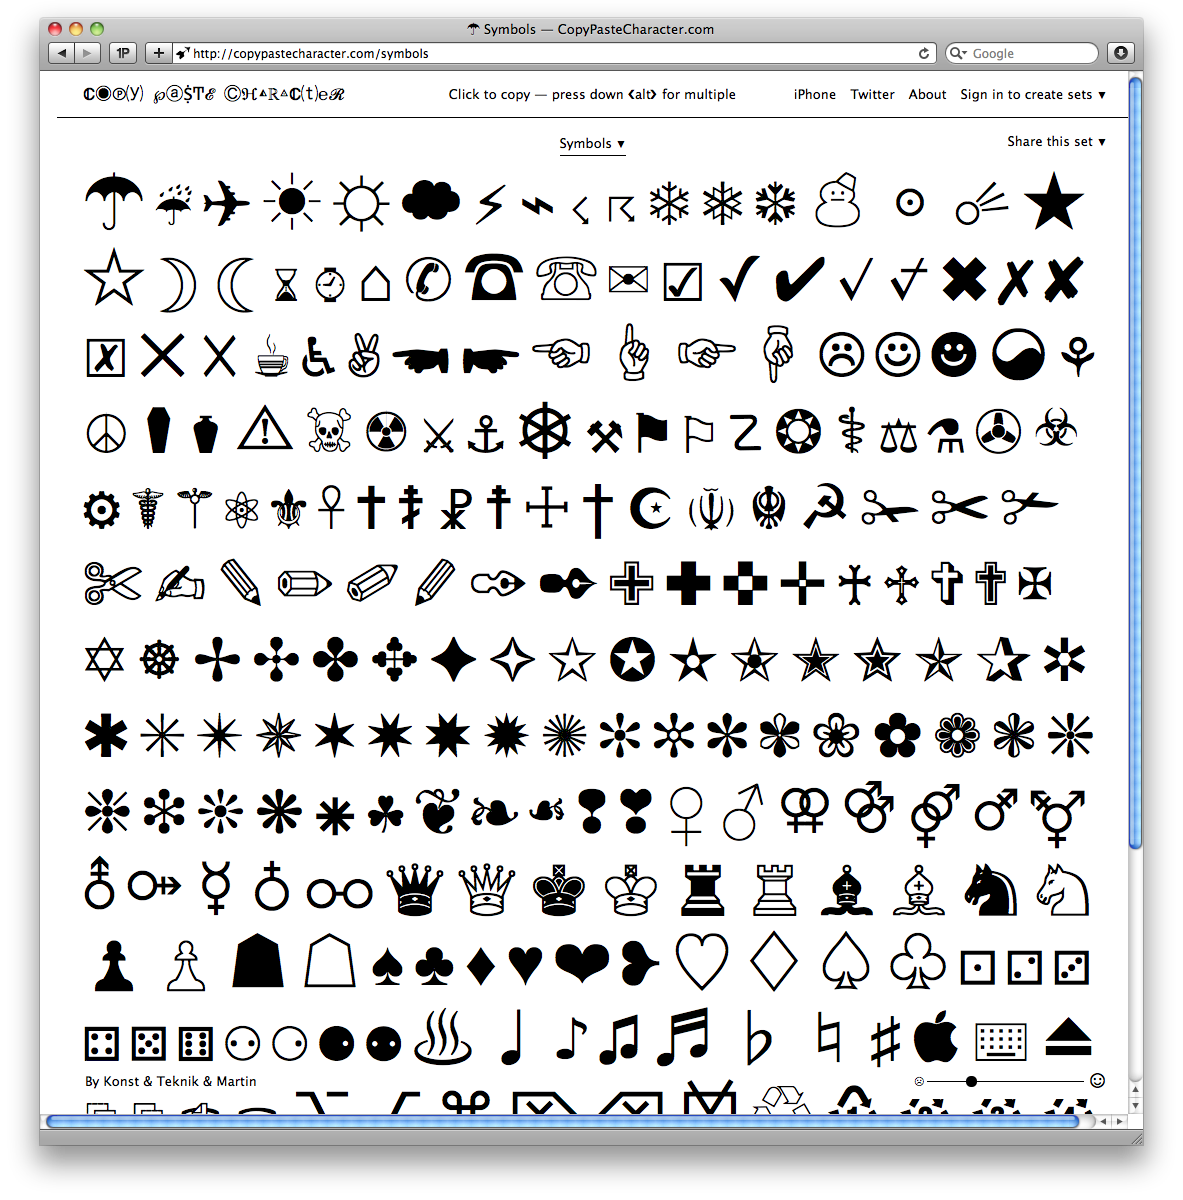 copy paste character | Copy paste symbols, Character ...Text Art Symbols Copy And Paste